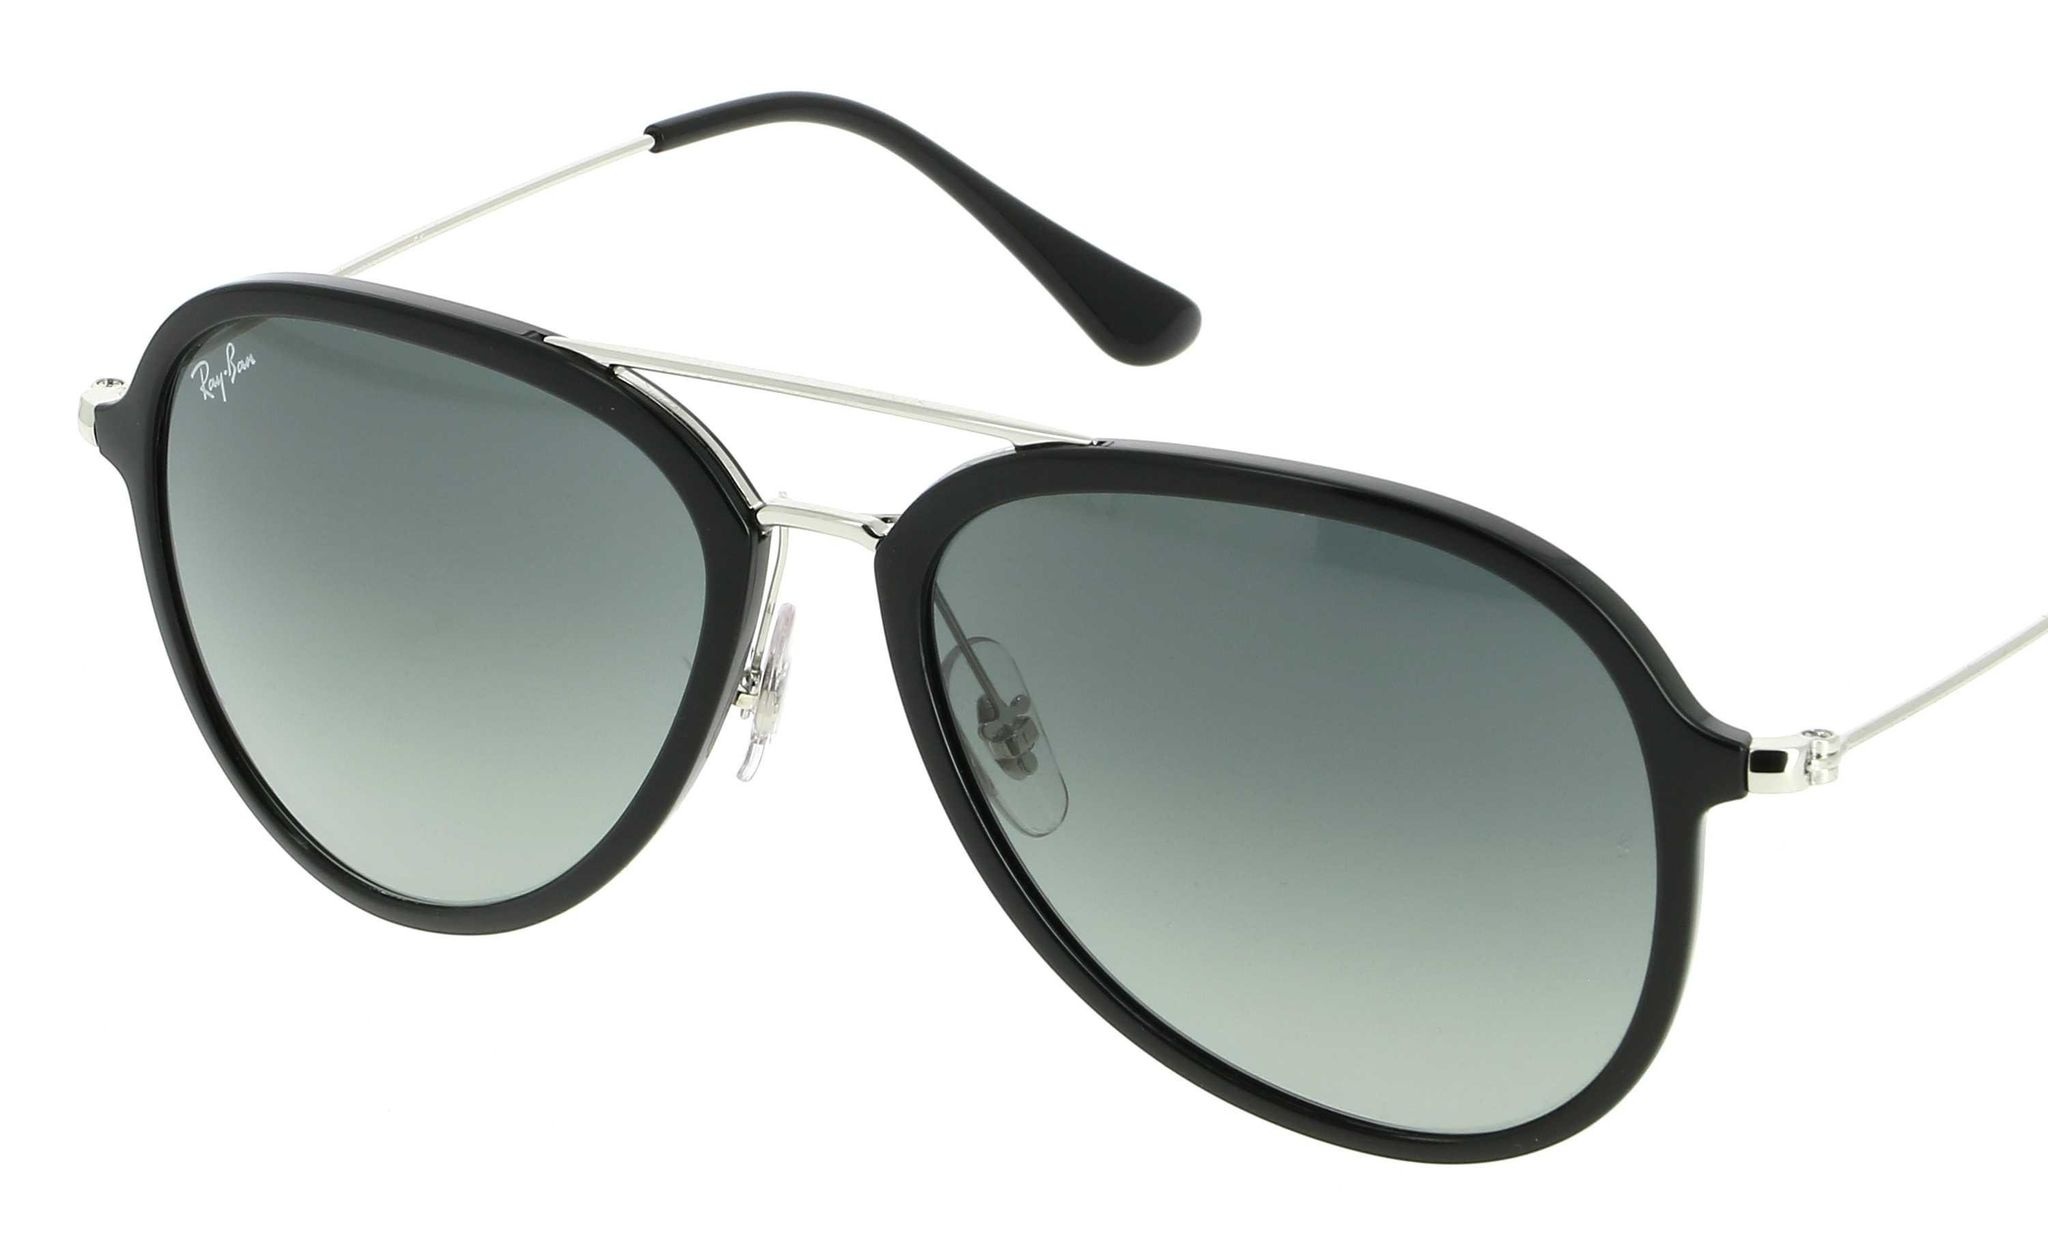 42460abdd2 Ray-Ban Ray-Ban Contemporary Pilot Sunglasses In Black Grey Gradient RB4298  601 71